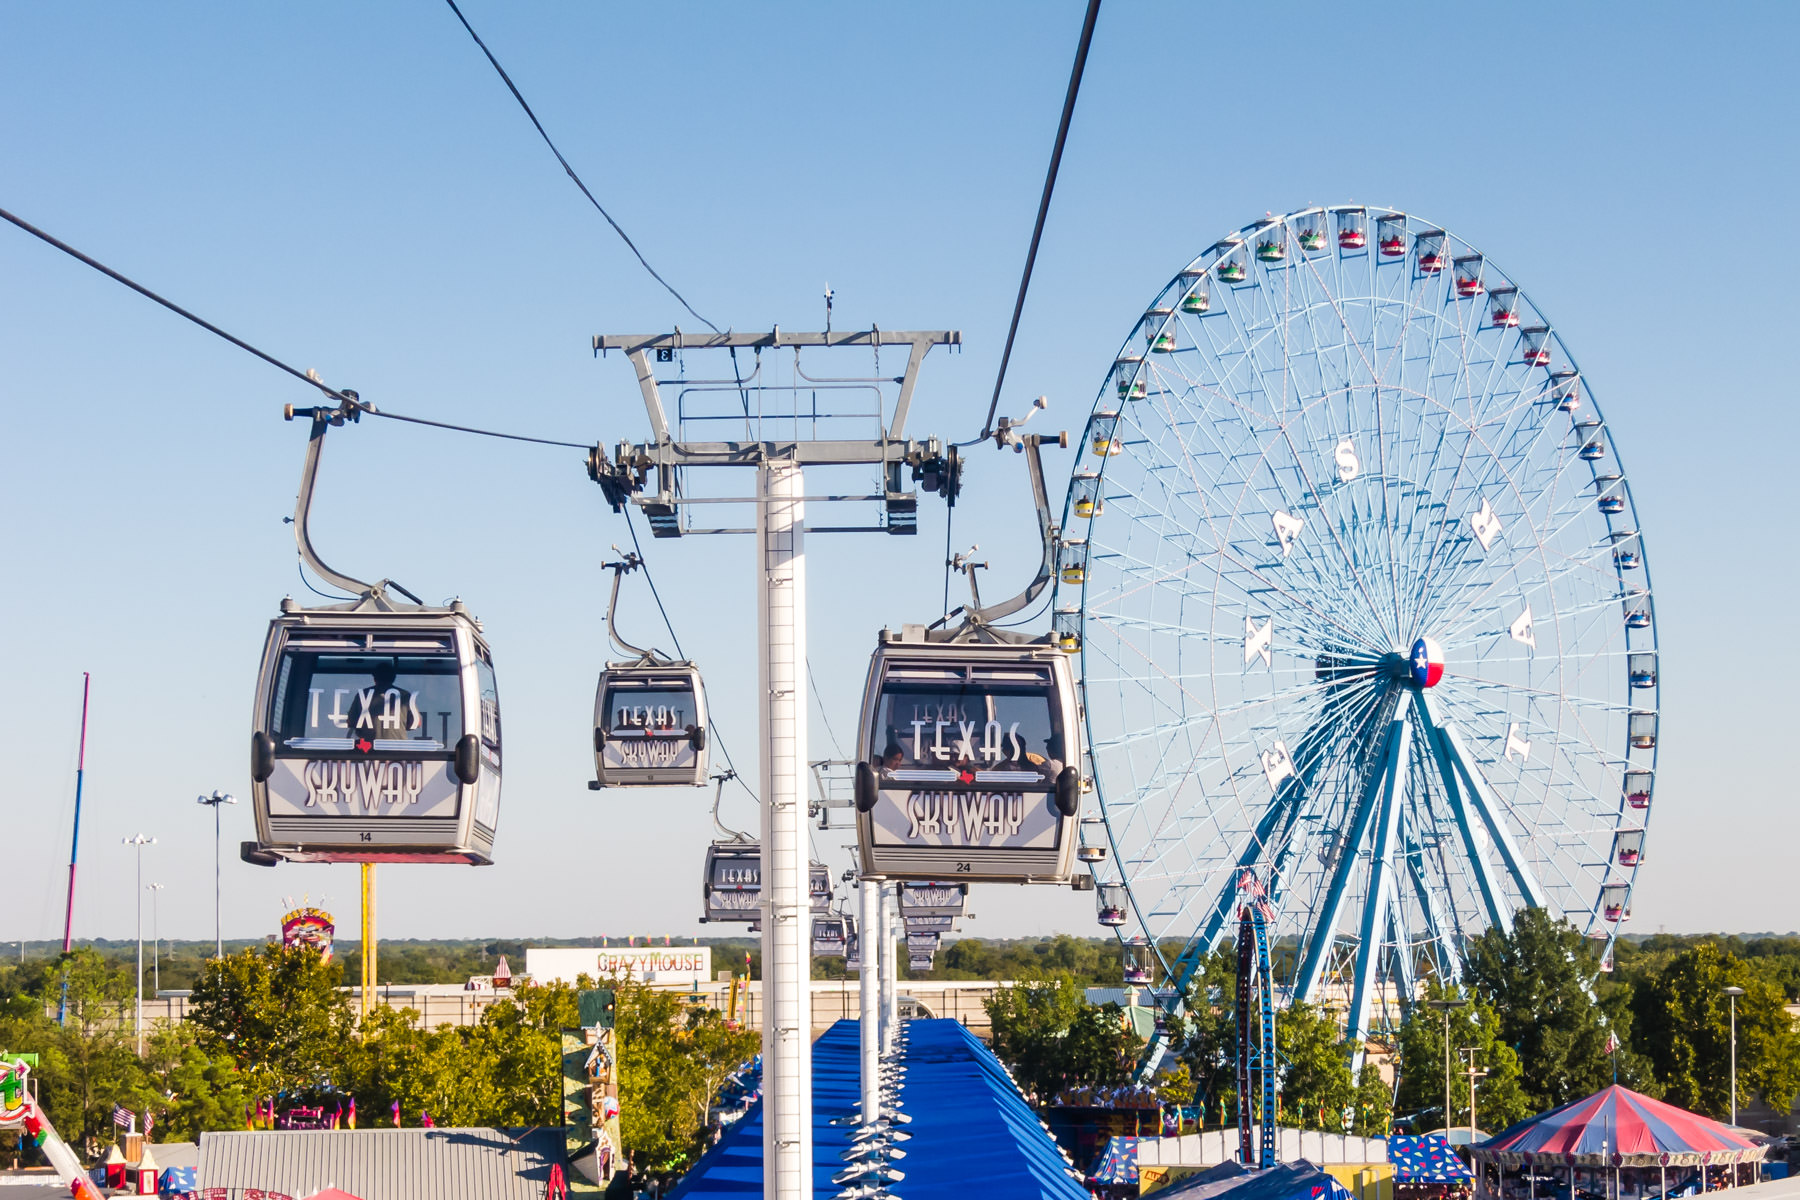 The aerial tramway at Dallas Fair Park during the State Fair of Texas.